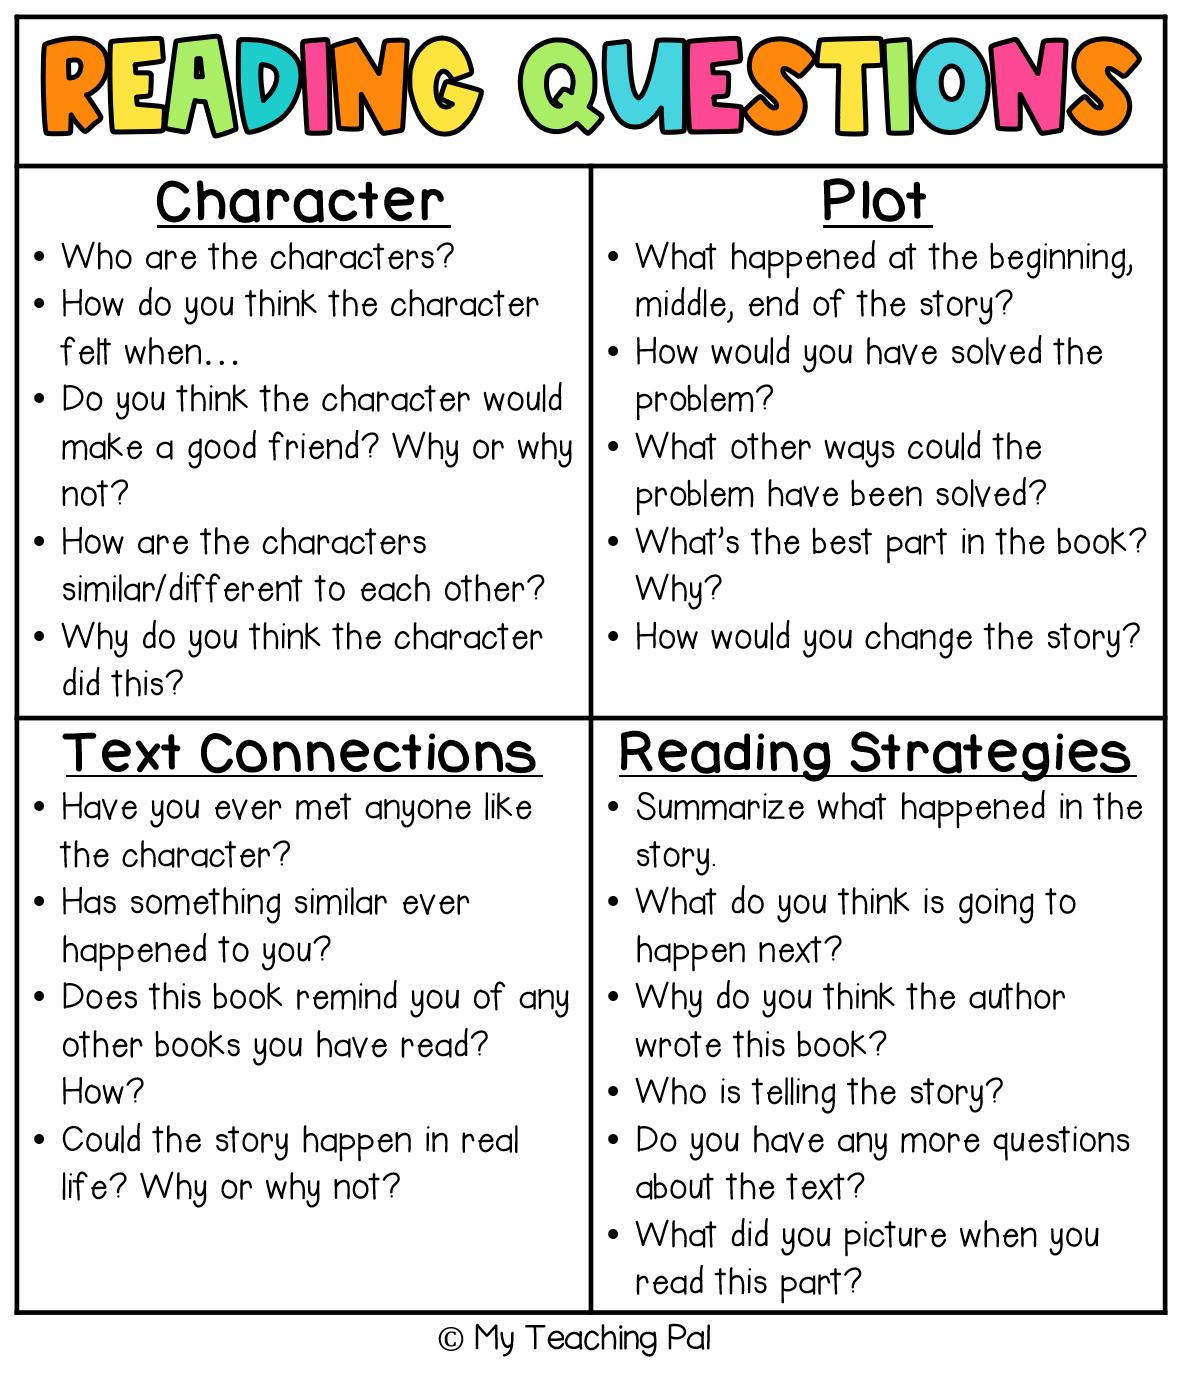 Guided Reading Questions Reading Comprehension Strategies Guided Reading Questions Reading Comprehension Questions [ 1379 x 1182 Pixel ]